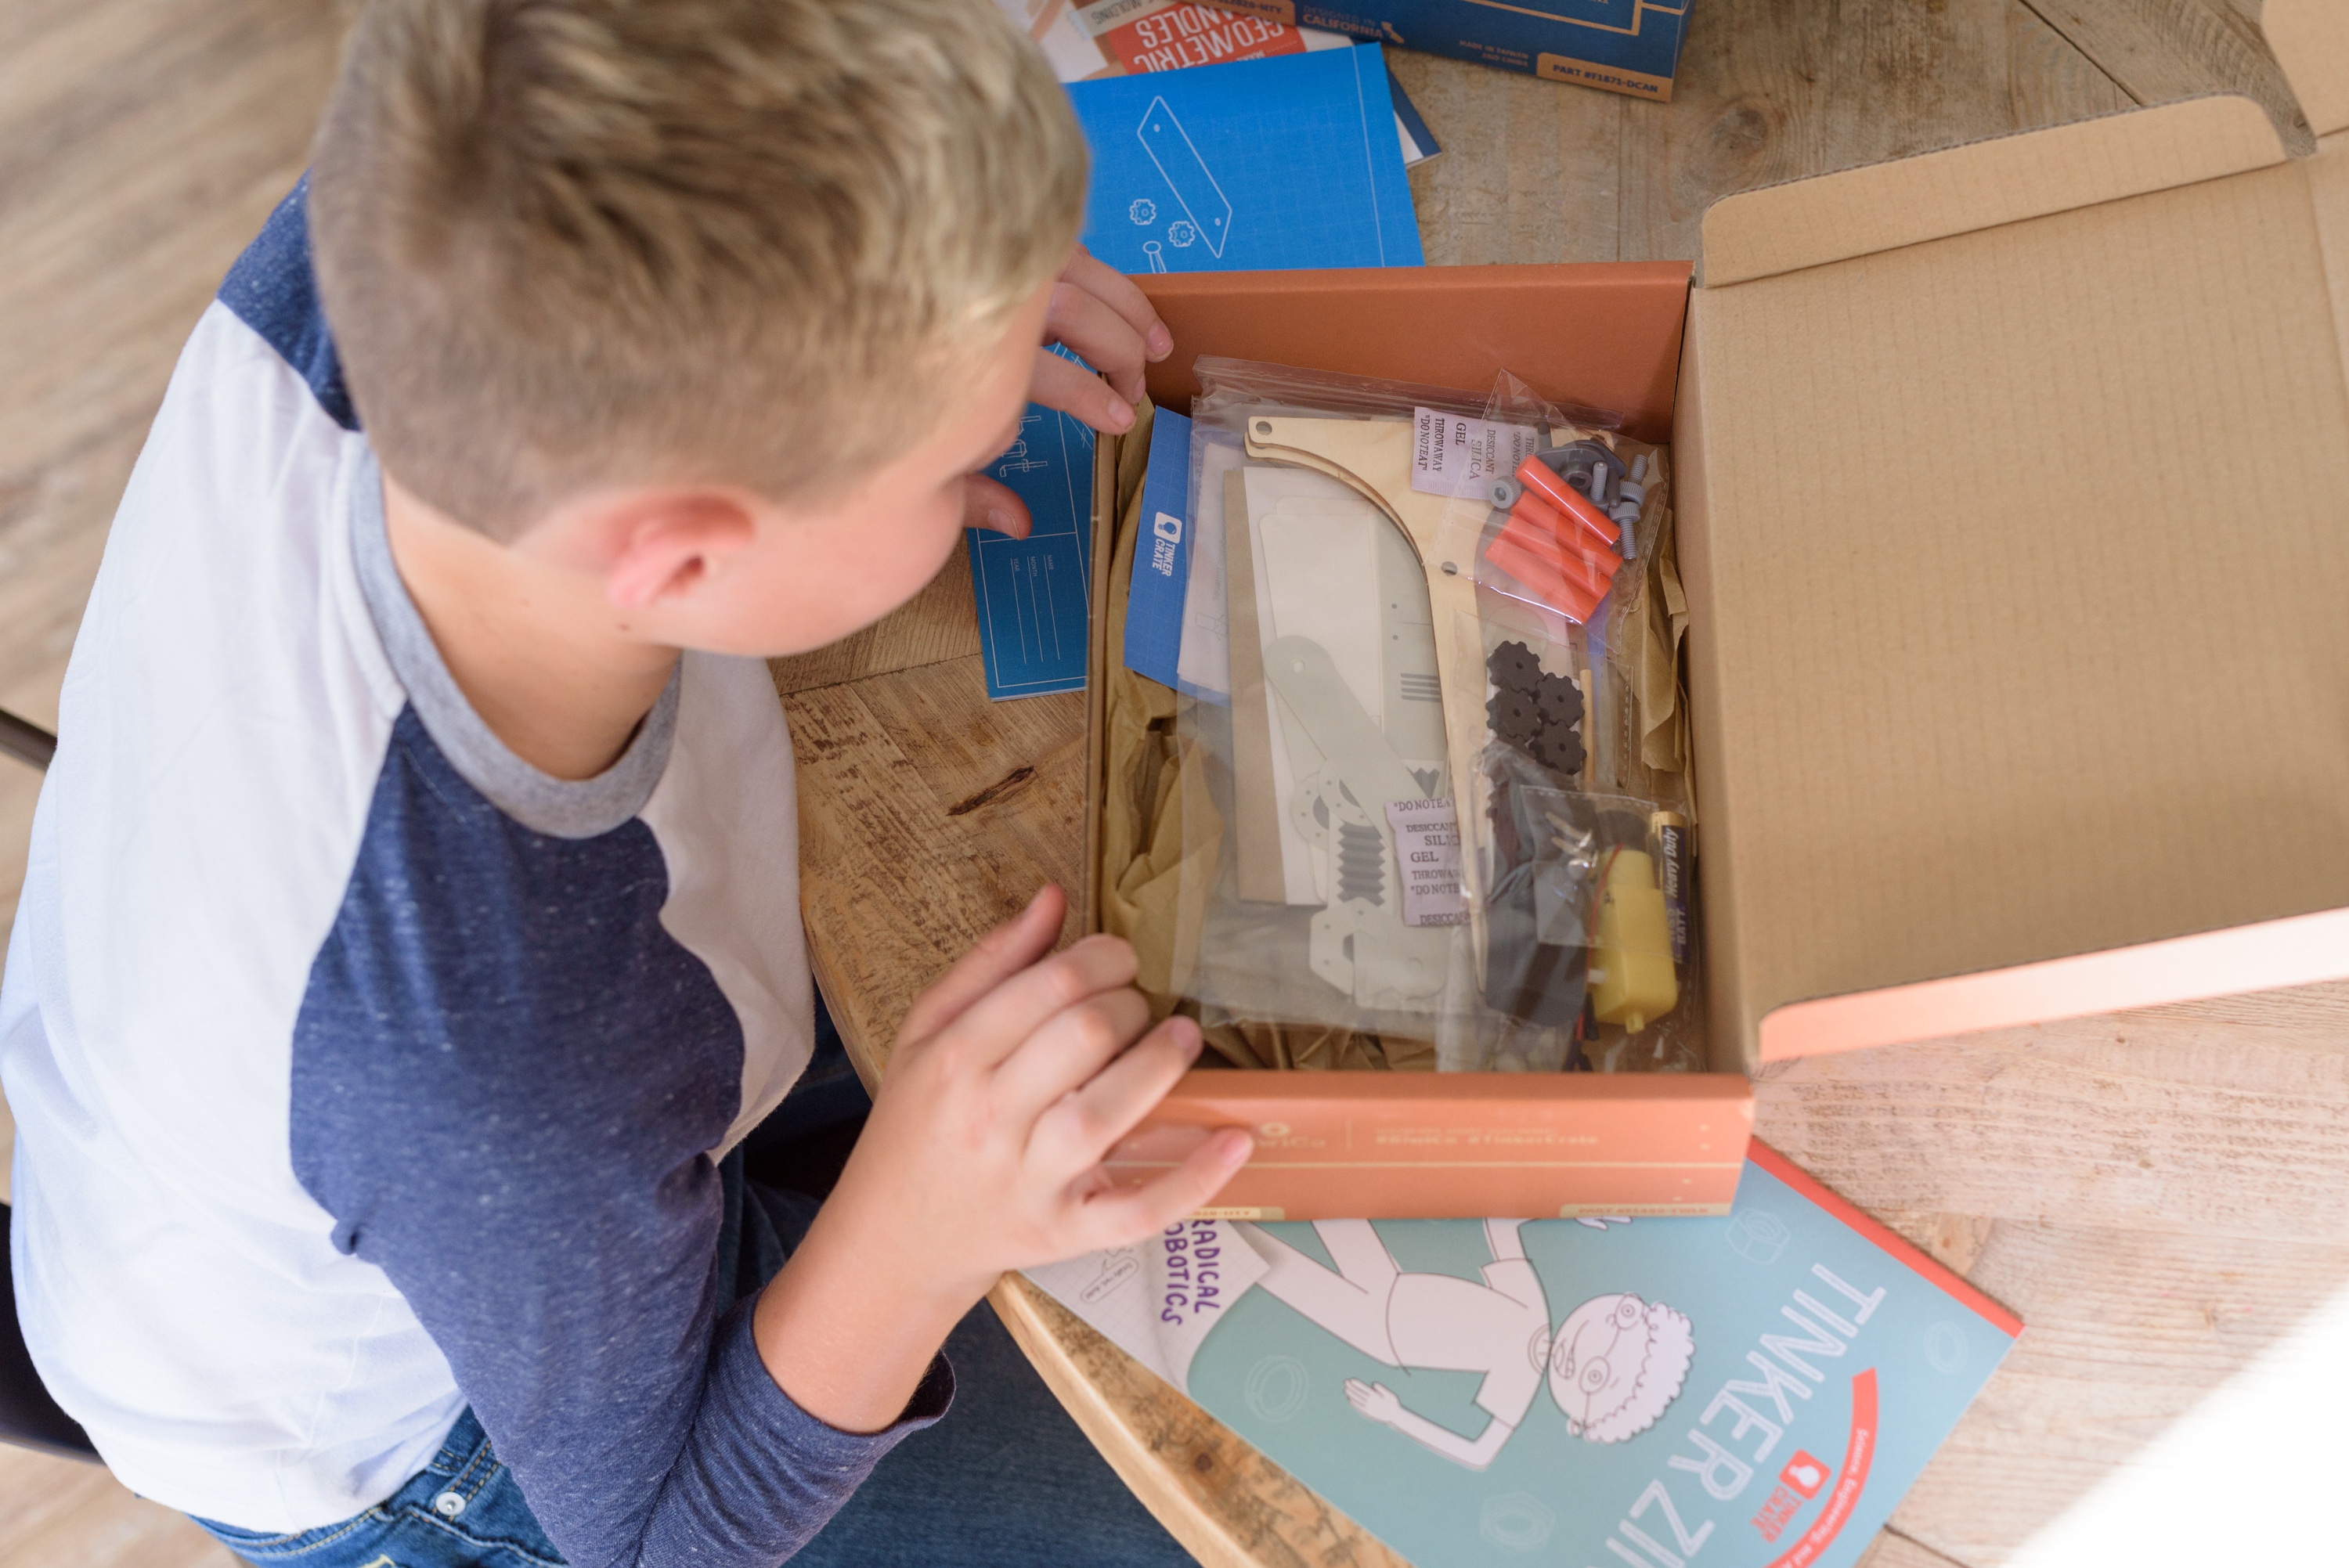 Kiwico Reviews by popular Houston lifestyle blog, Fancy Ashley: image of a boy looking through his Kiwico box.